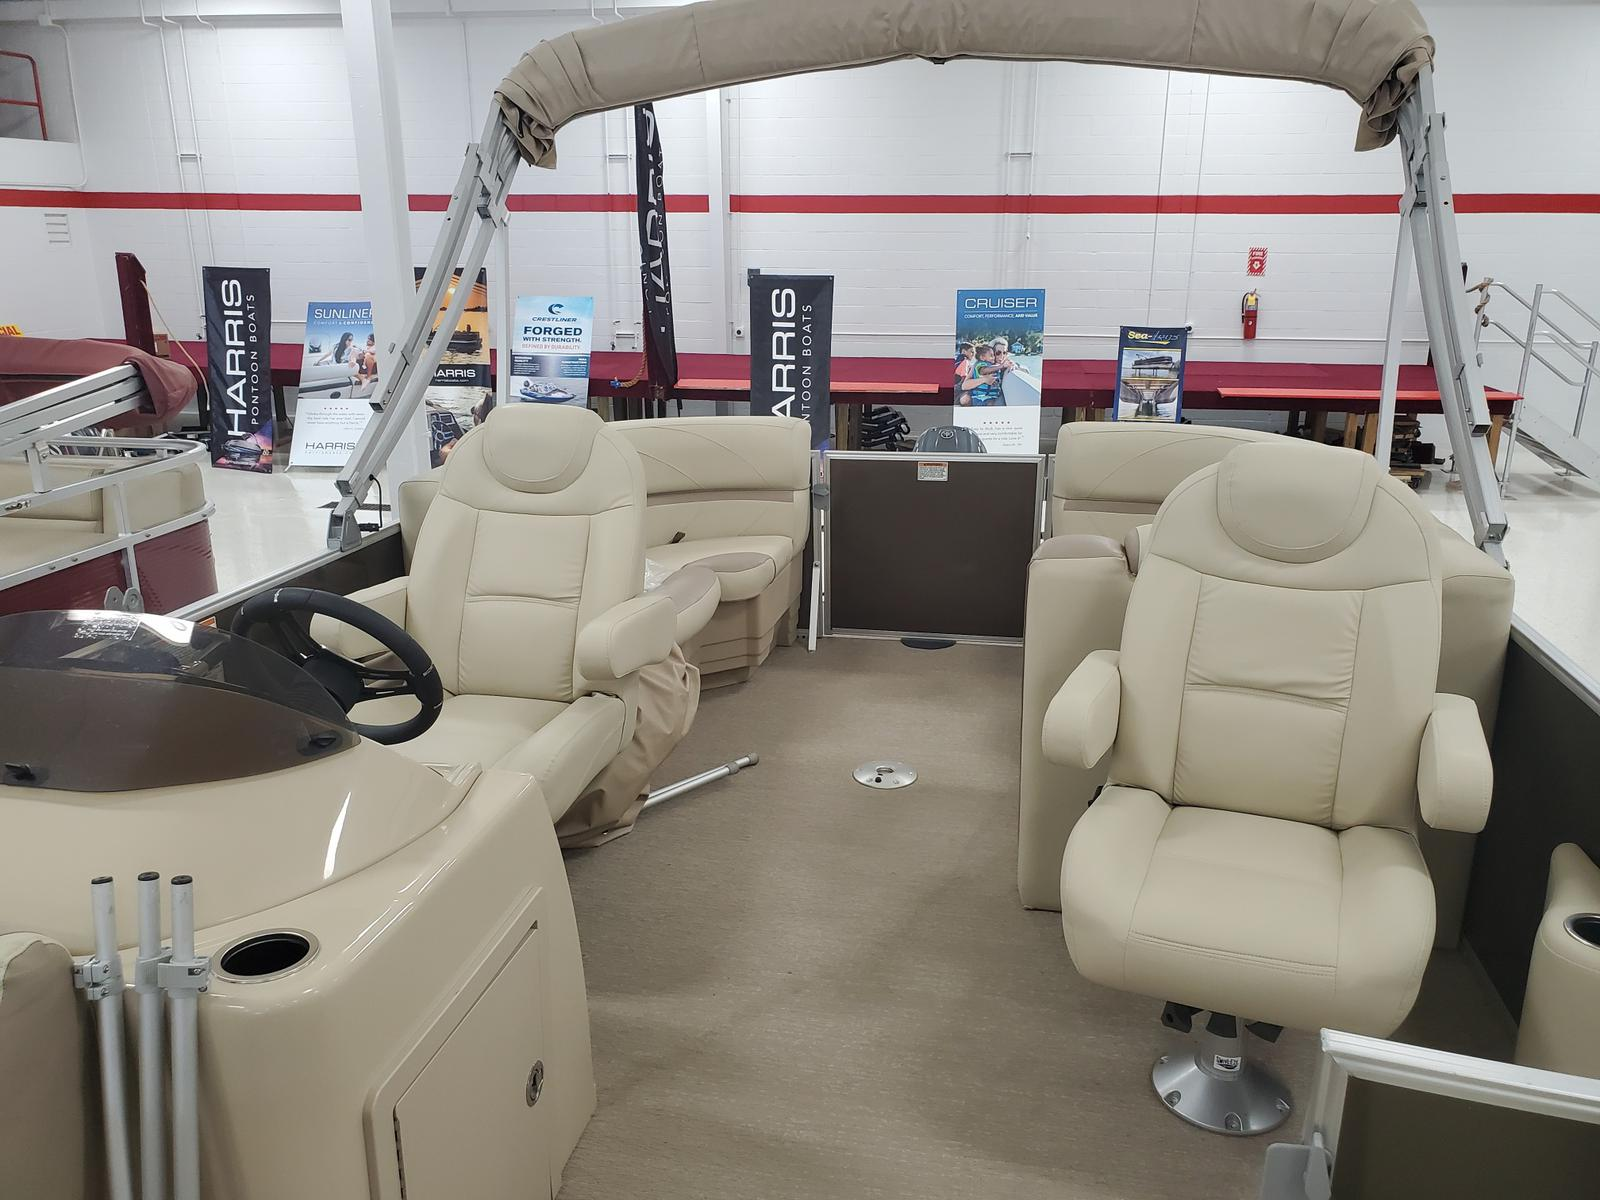 2018 SunChaser boat for sale, model of the boat is Geneva Cruise 20 LR DH & Image # 5 of 11